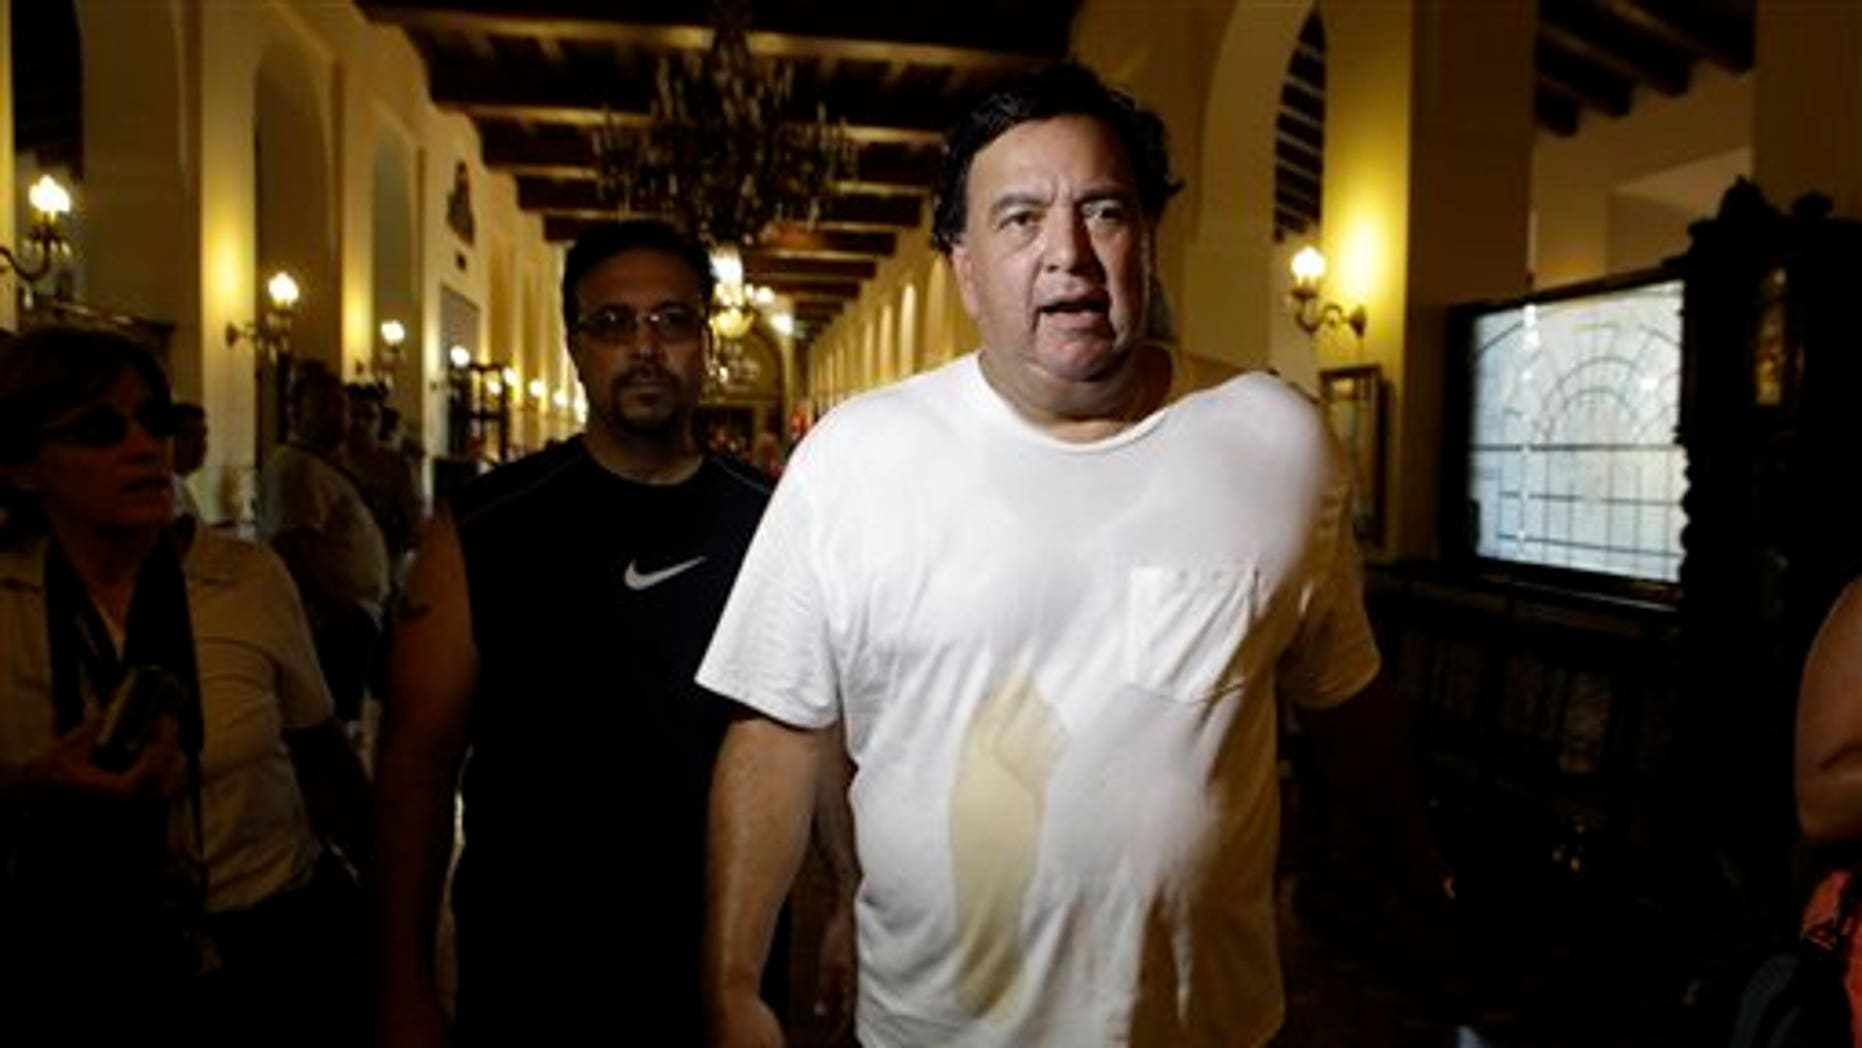 September 8: Former New Mexico Gov. Bill Richardson walks through the National Hotel after a morning work out in Havana, Cuba